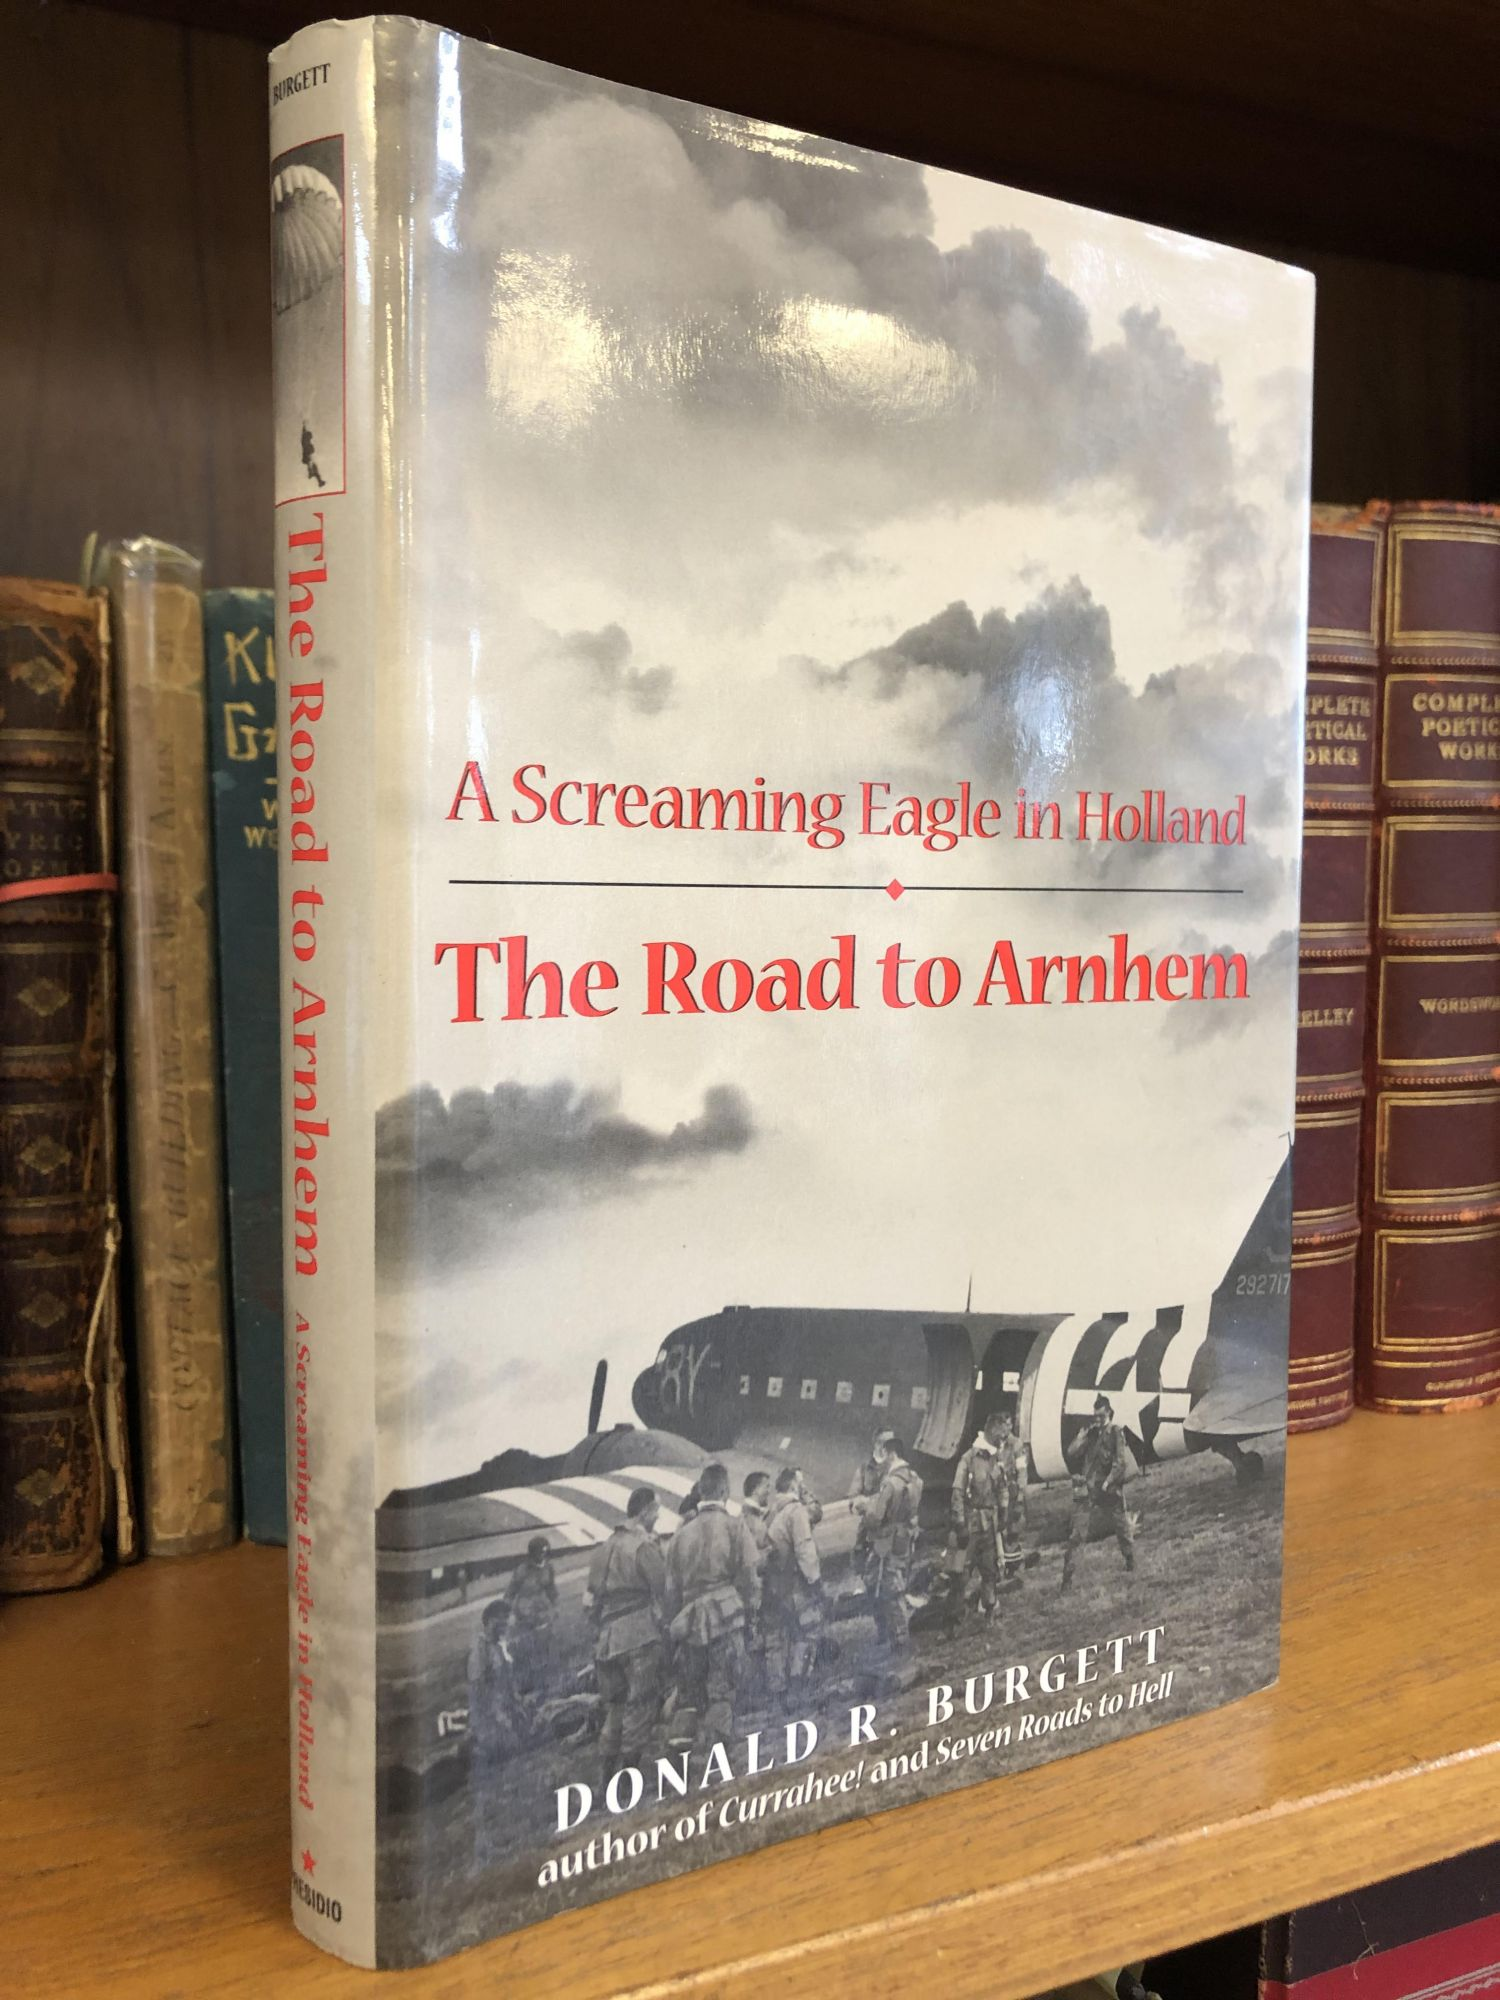 A SCREAMING EAGLE IN HOLLAND: THE ROAD TO ARNHEM [SIGNED]. Donald R. Burgett.